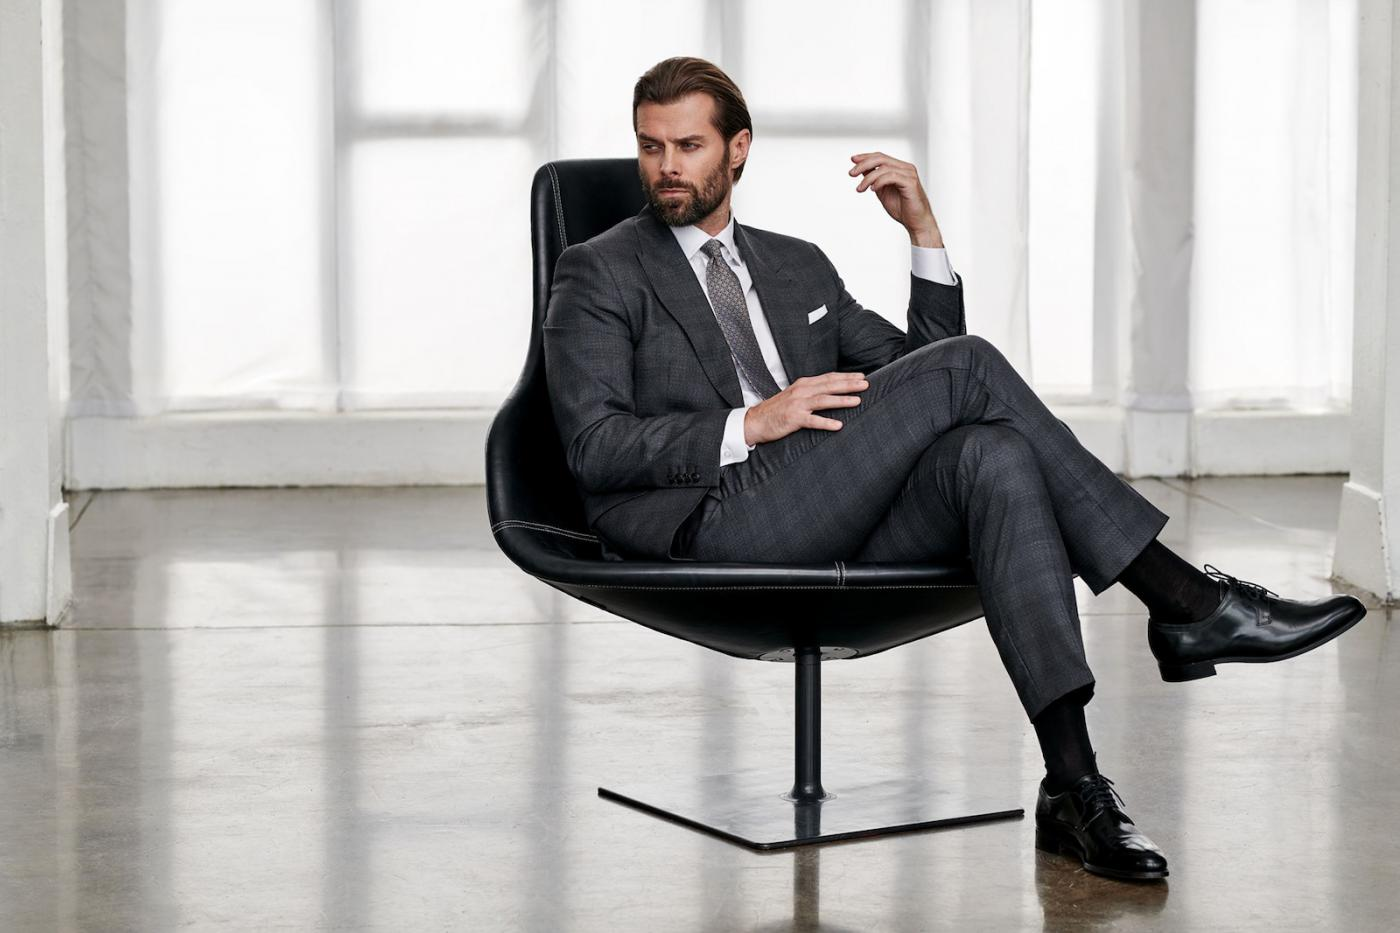 Business outfit for meetings in grey or graphite half-tones